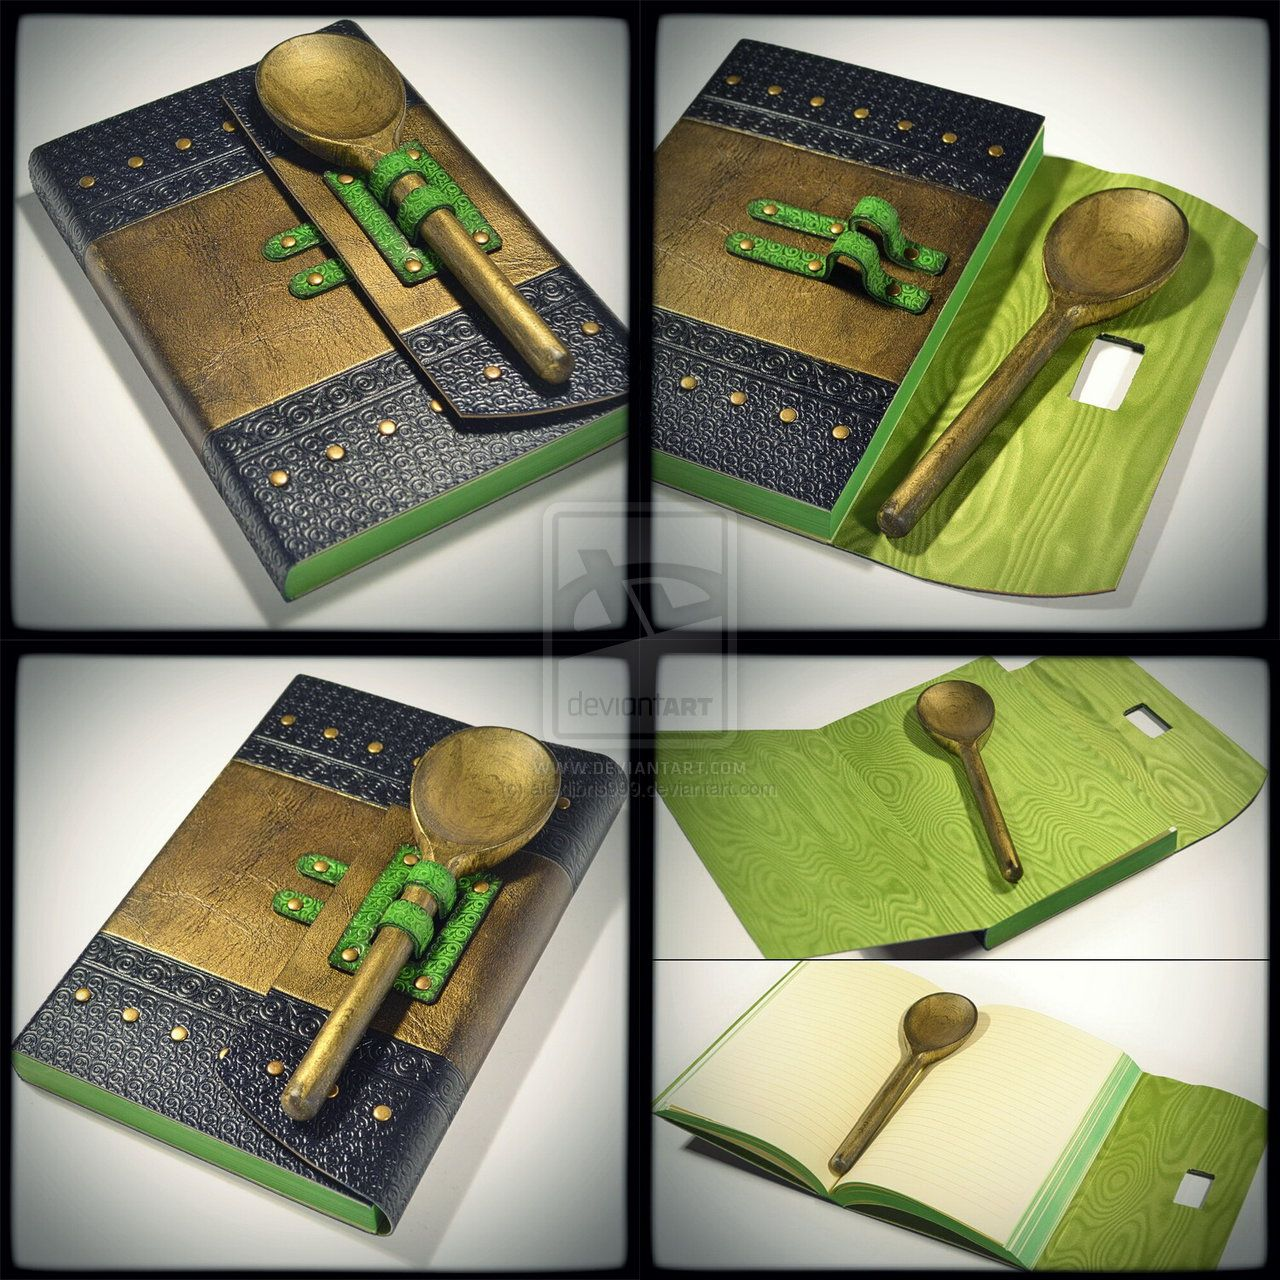 Gilded Spoon Cook Book... By Alexlibris999